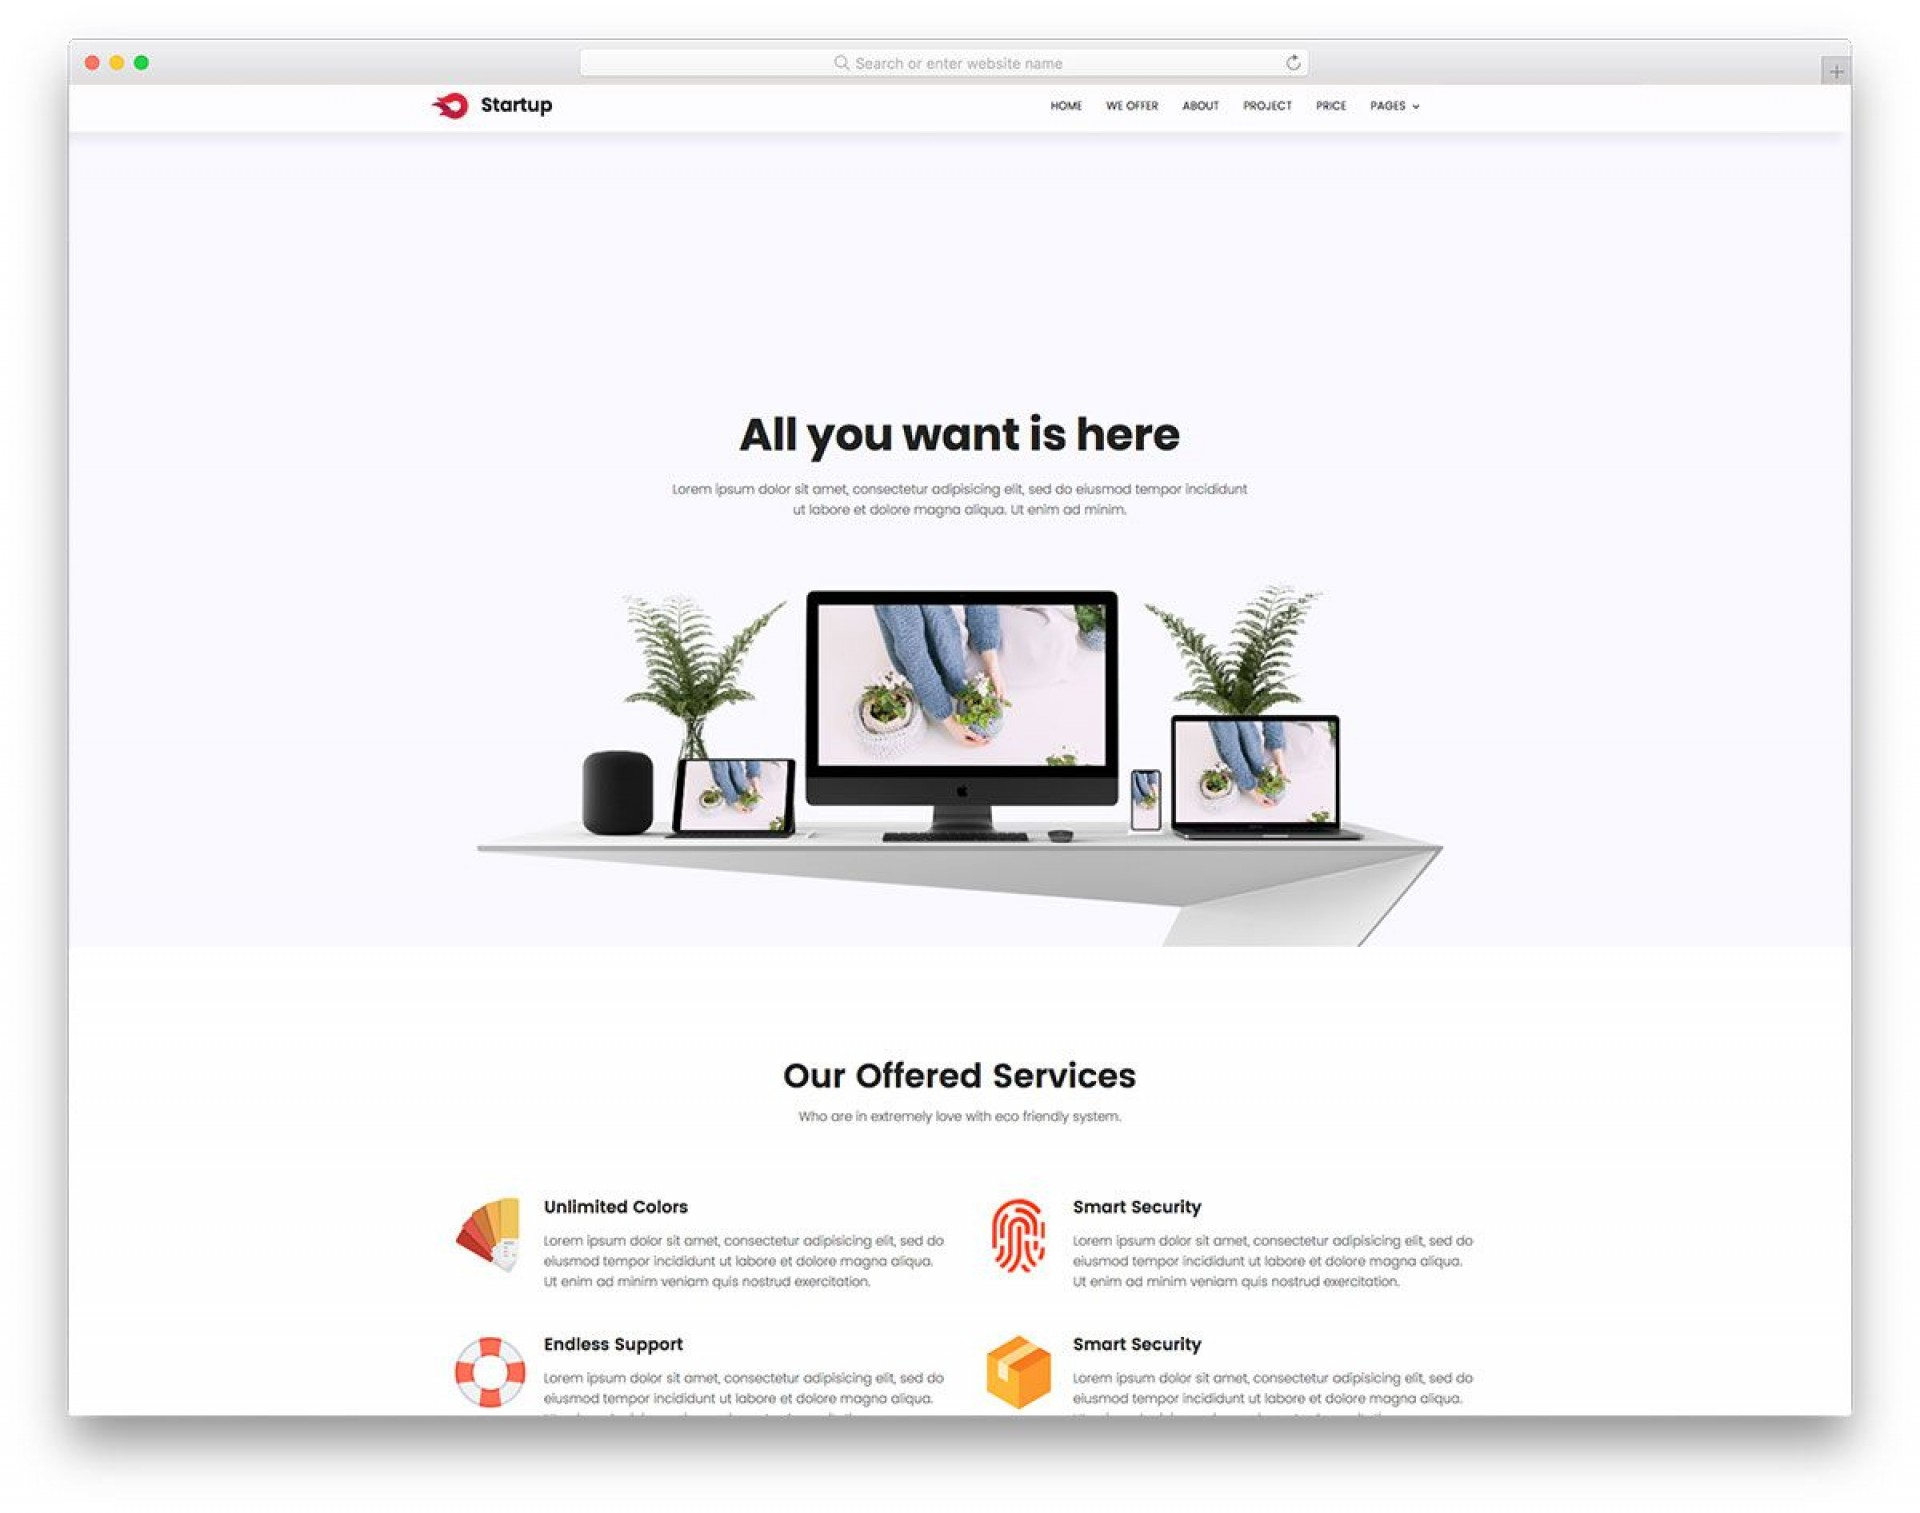 011 Outstanding Simple Web Page Template High Definition  Free Download Html Code1920